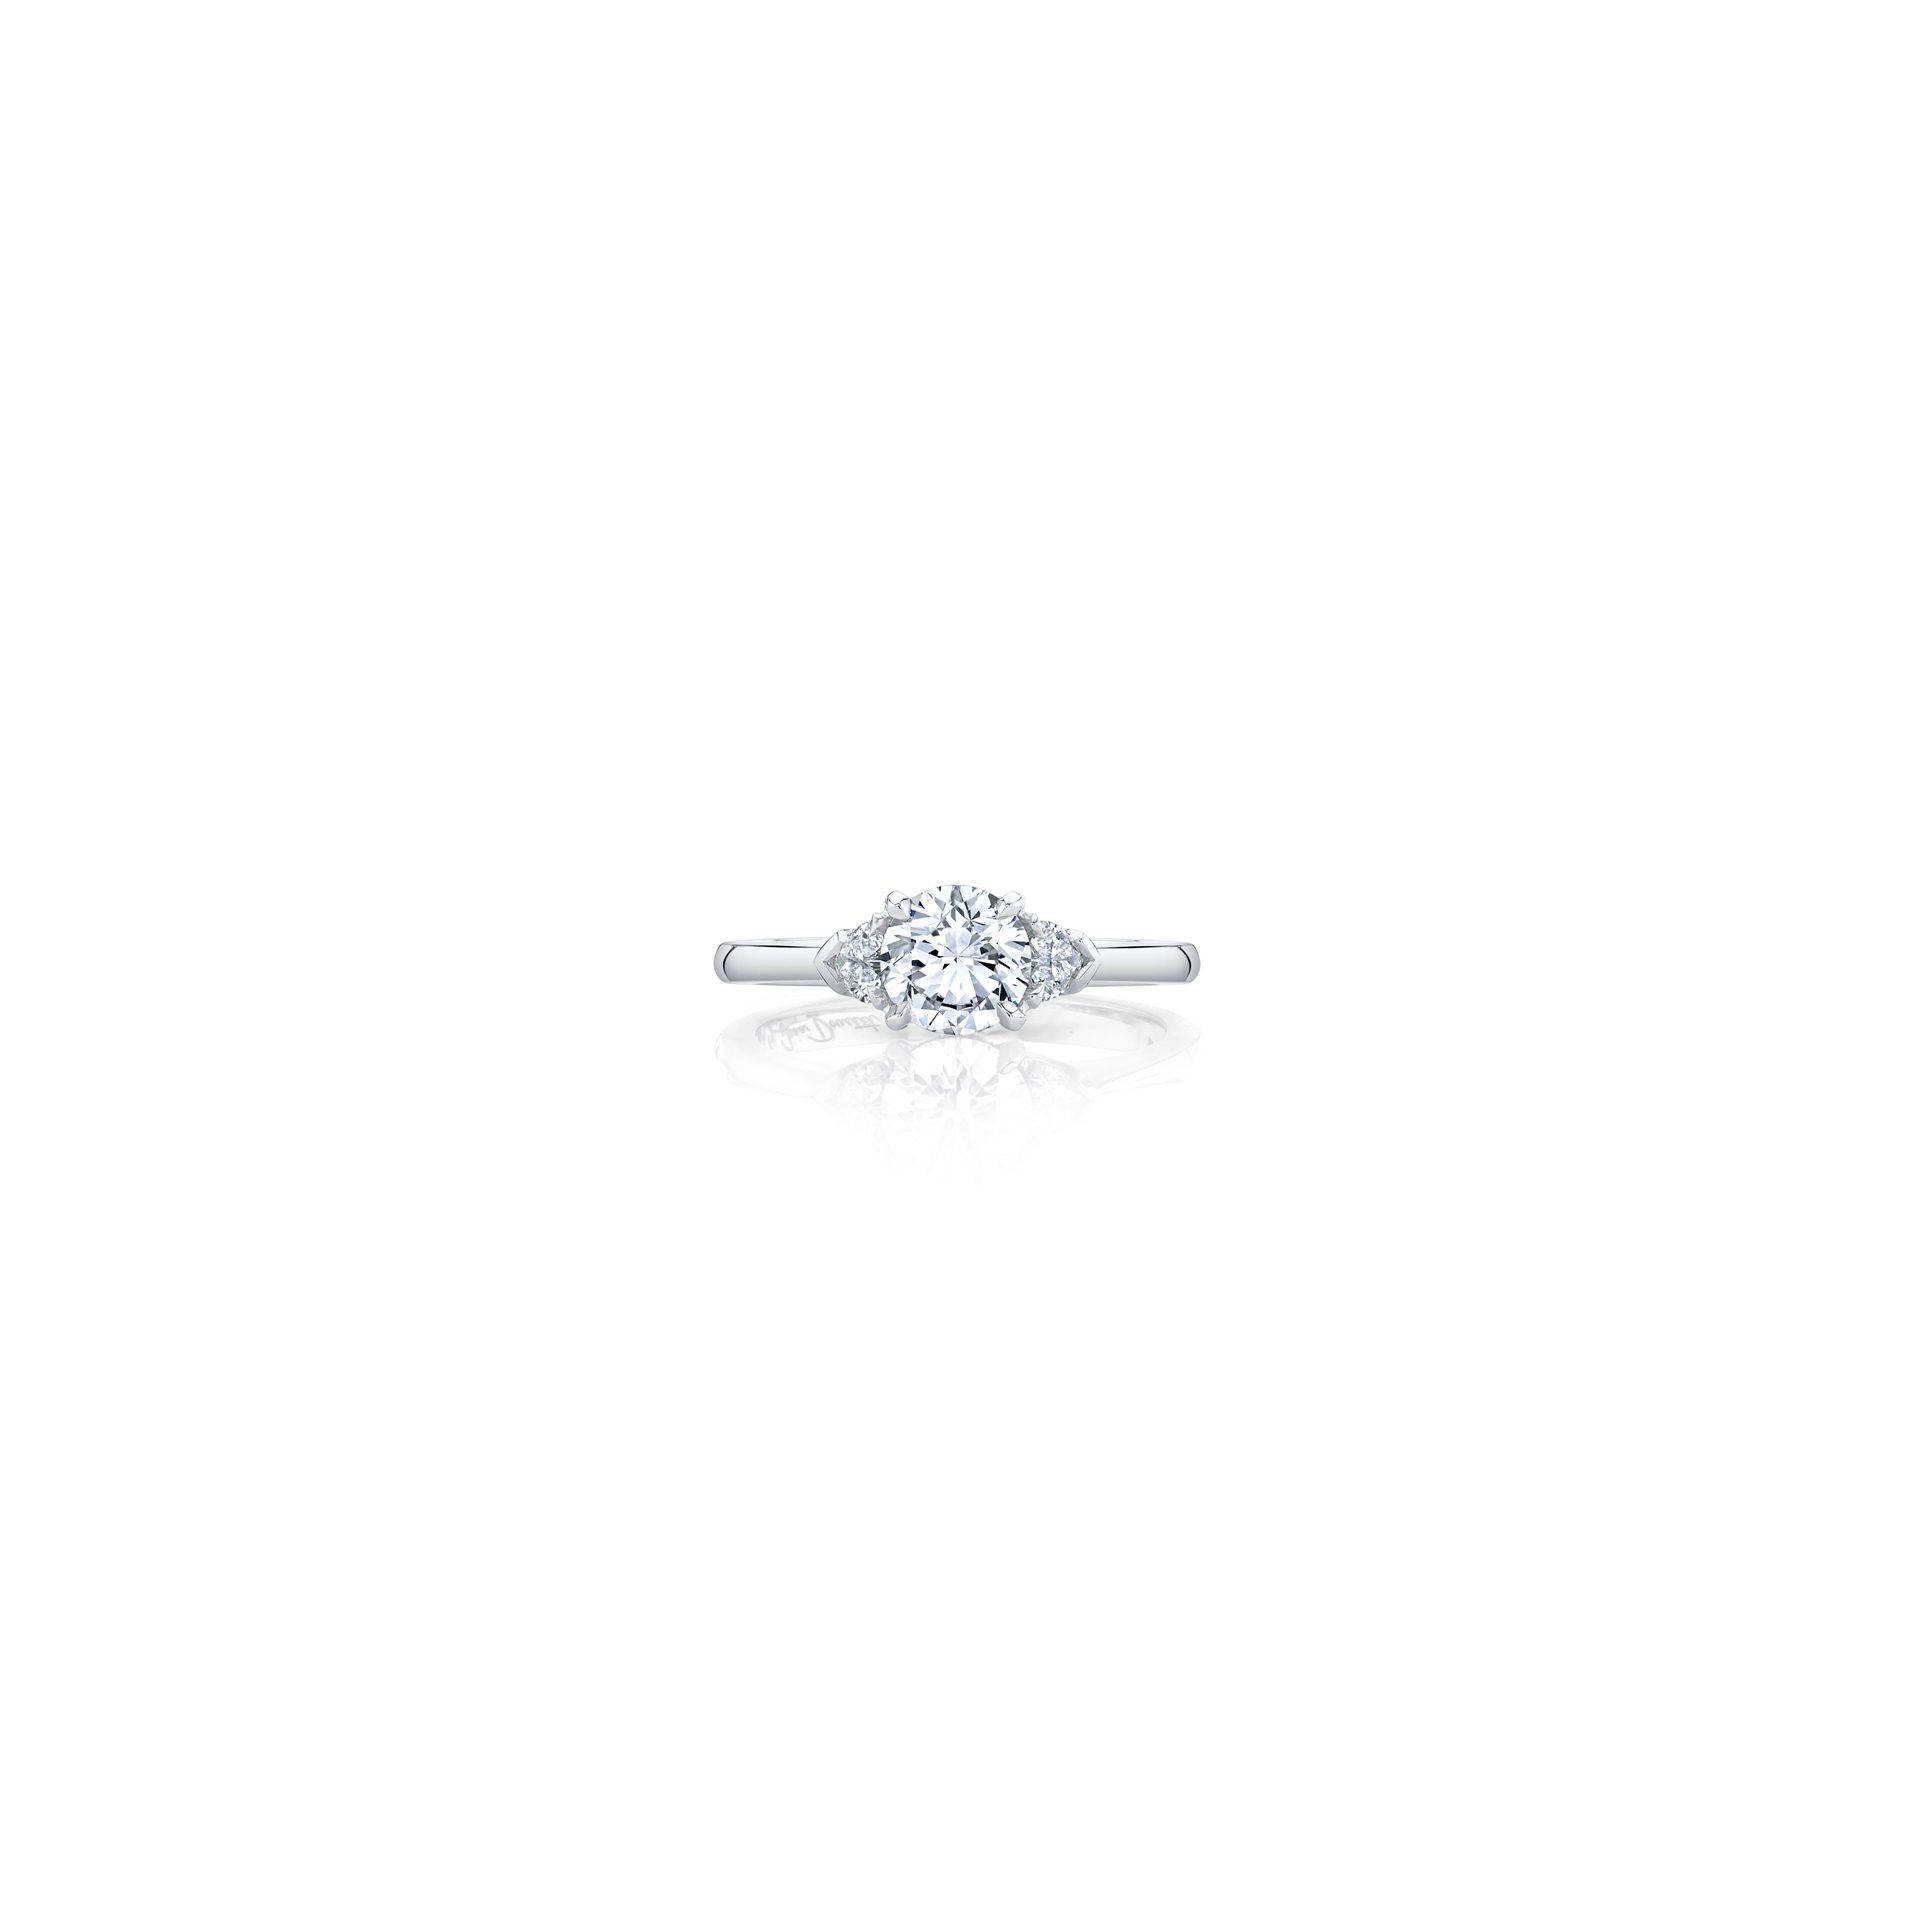 Claire Round Brilliant Three Stone Engagement Ring with heart-shaped diamond side stones in 18k White Gold Front View by Oui by Jean Dousset